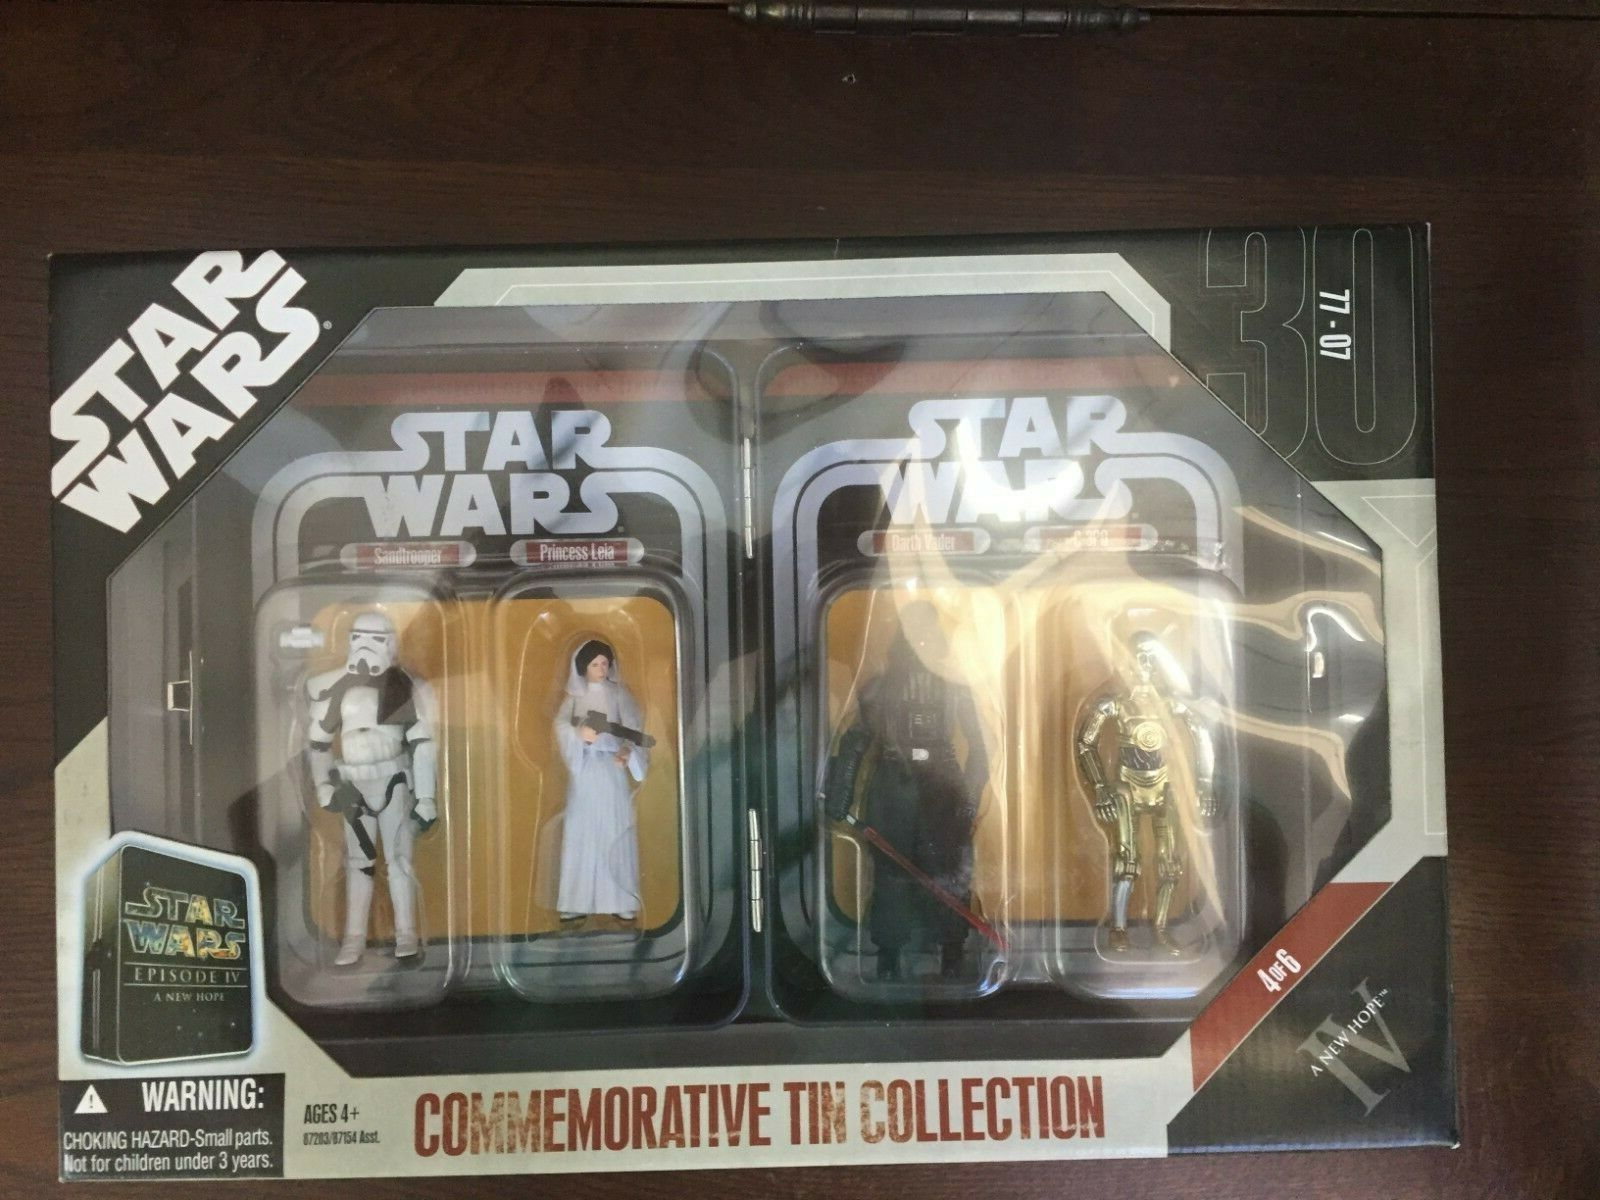 NEW 2006 STAR WARS COMMEMORATIVE TIN COLLECTION A NEW HOPE EPISODE IV 4 OF 6